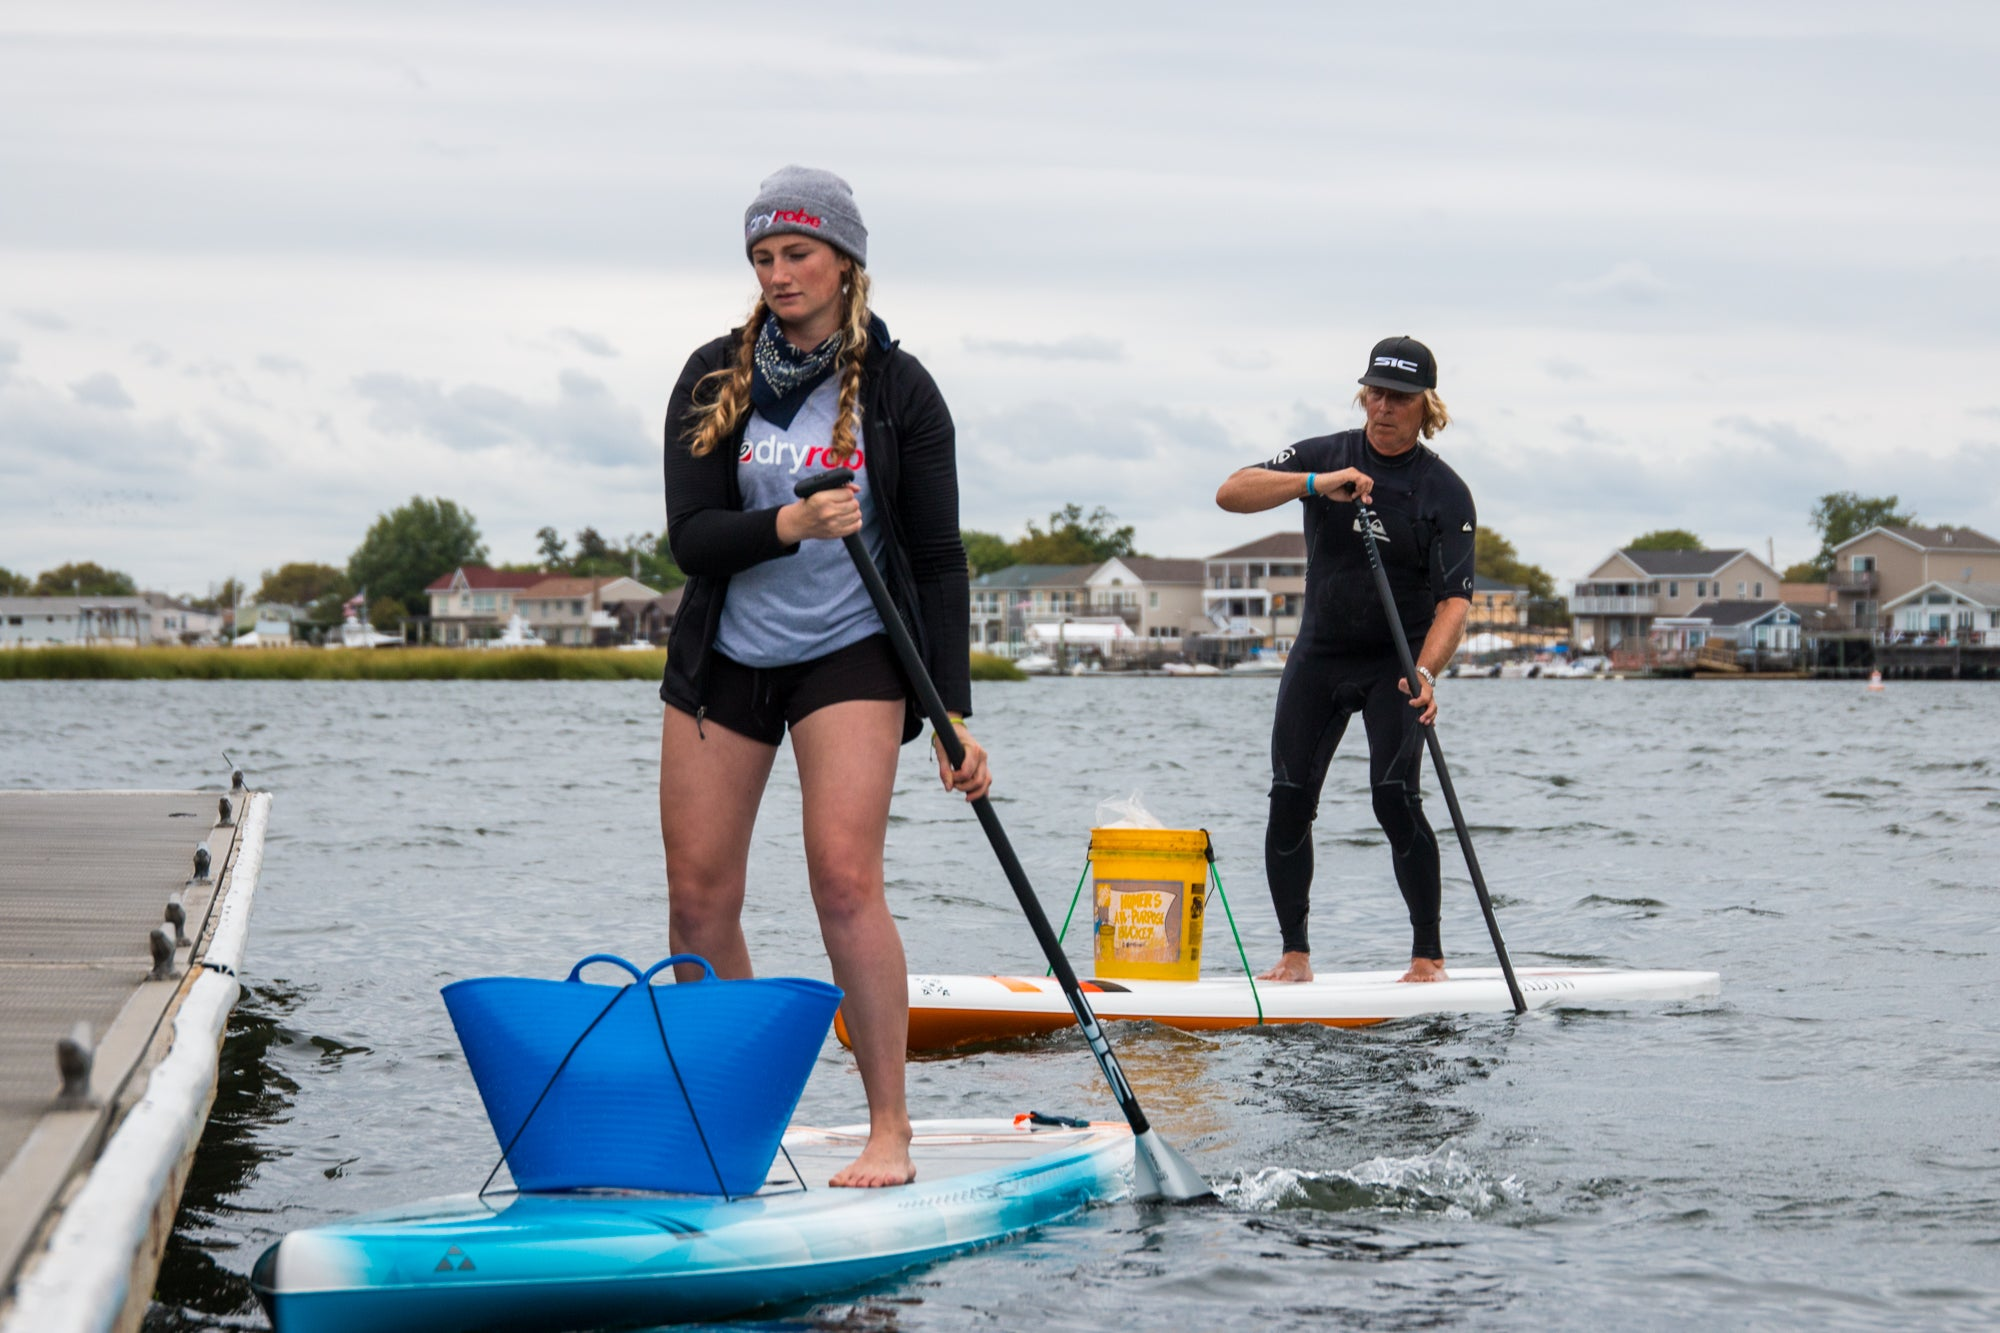 Cal Major waterway clean up at the 2019 NY SUP Open